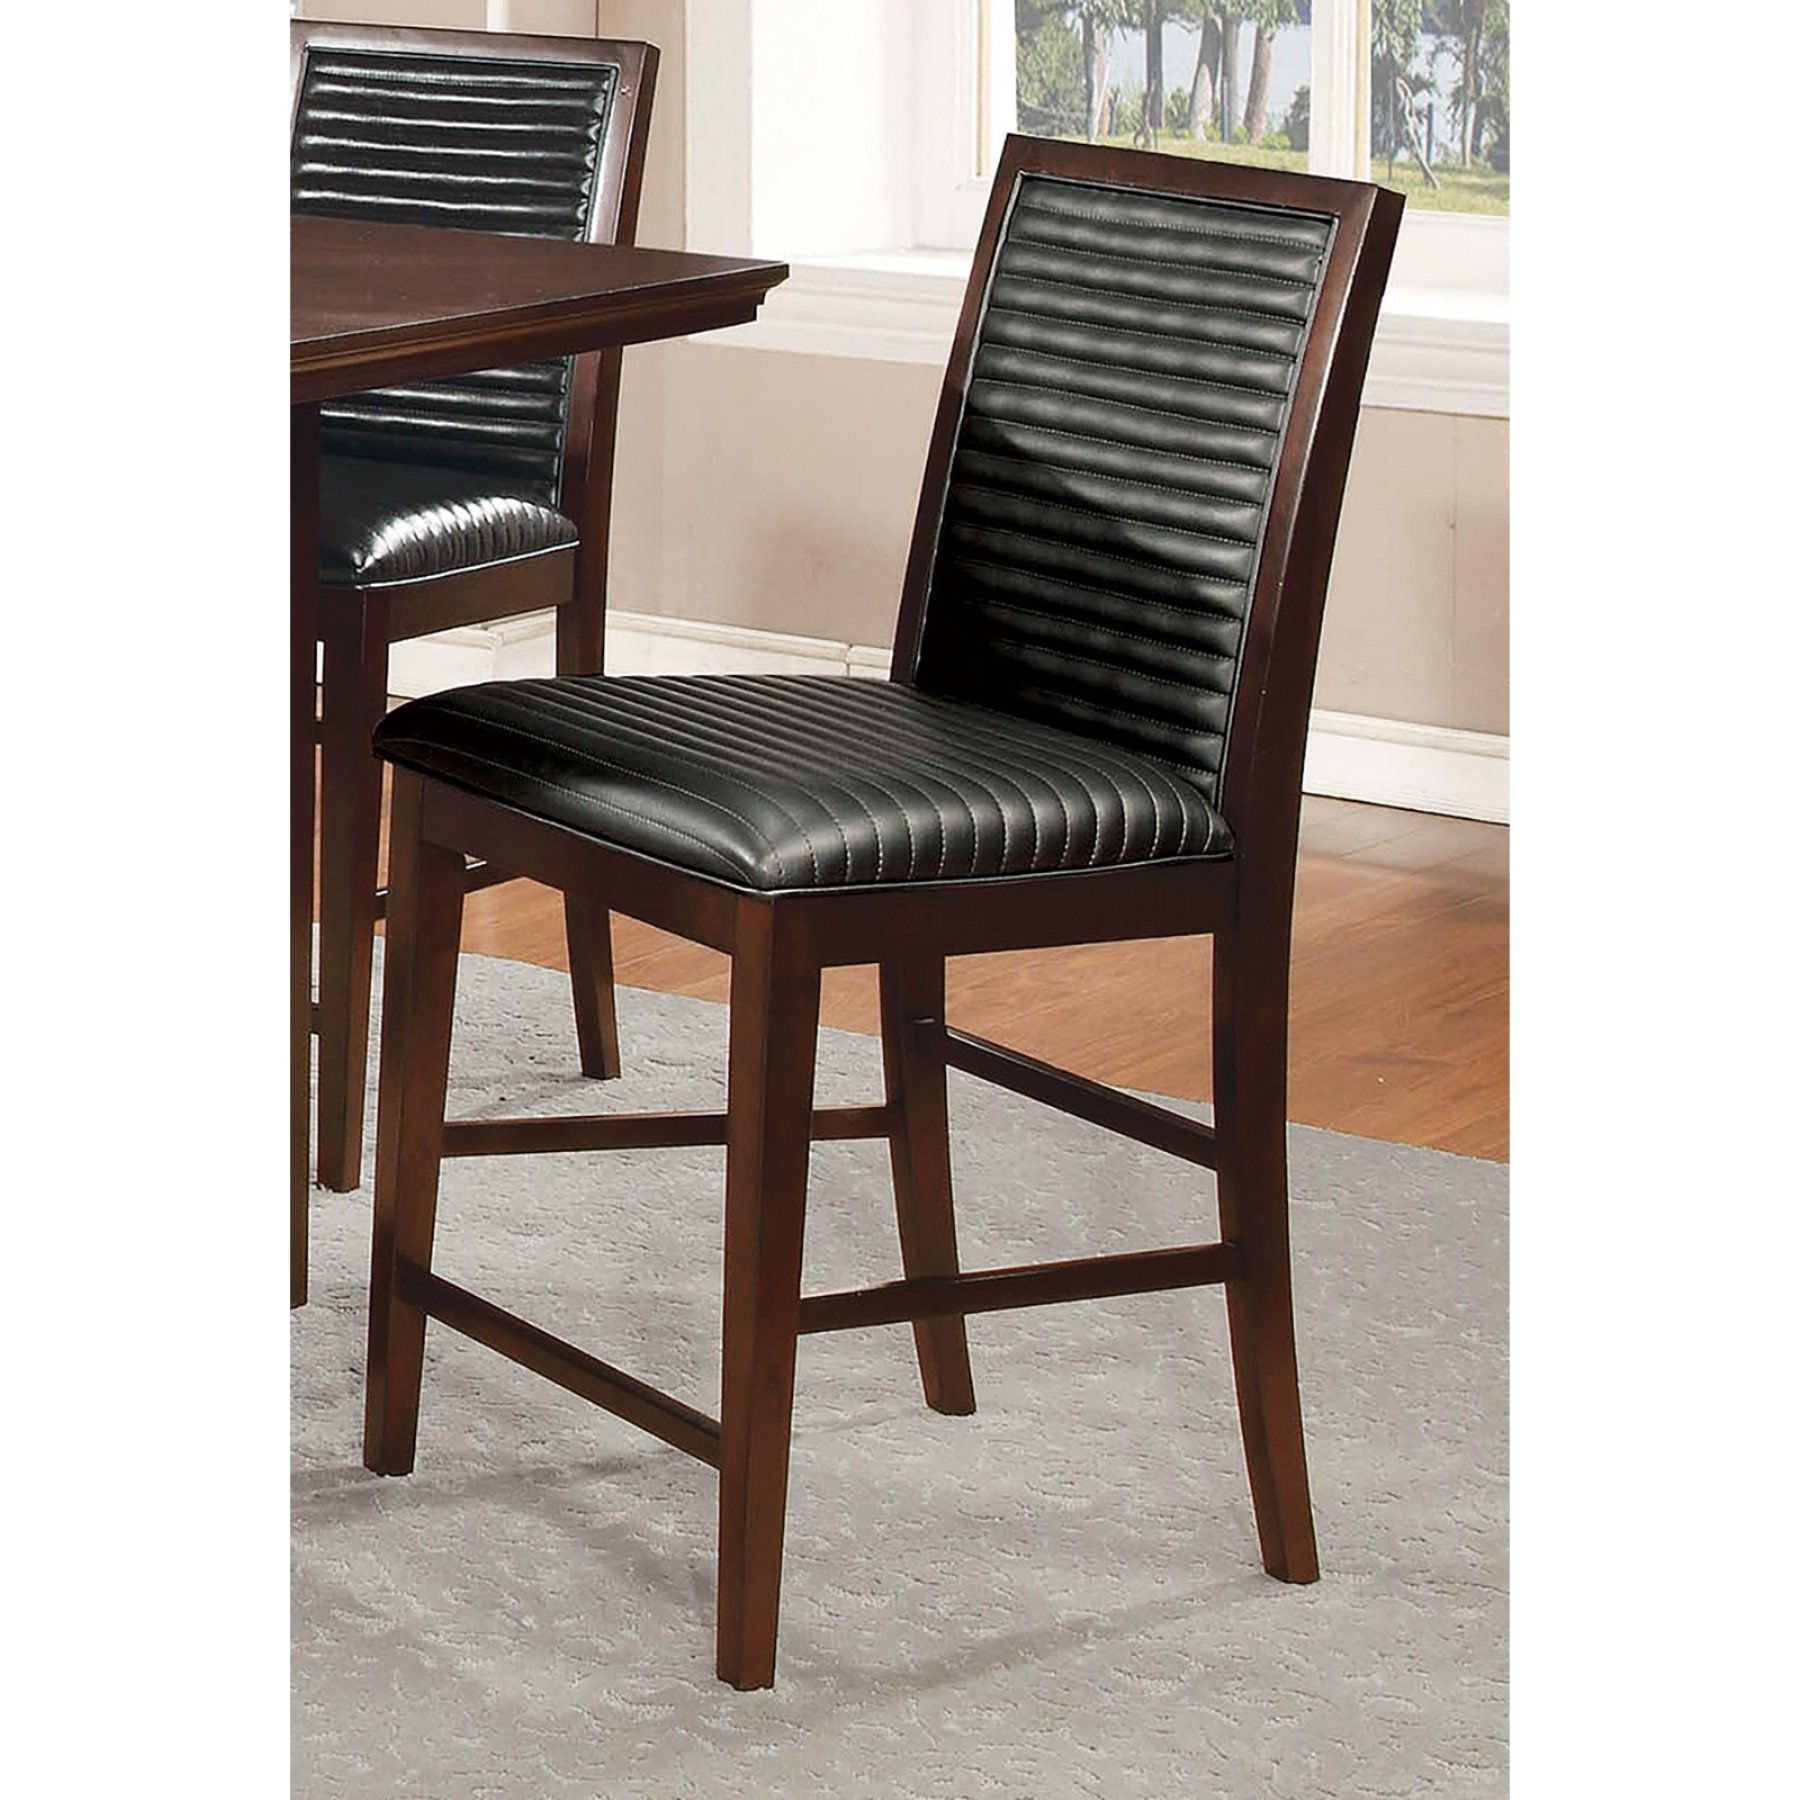 room set chair ca dining black counter of chairs bowden furniture package product height